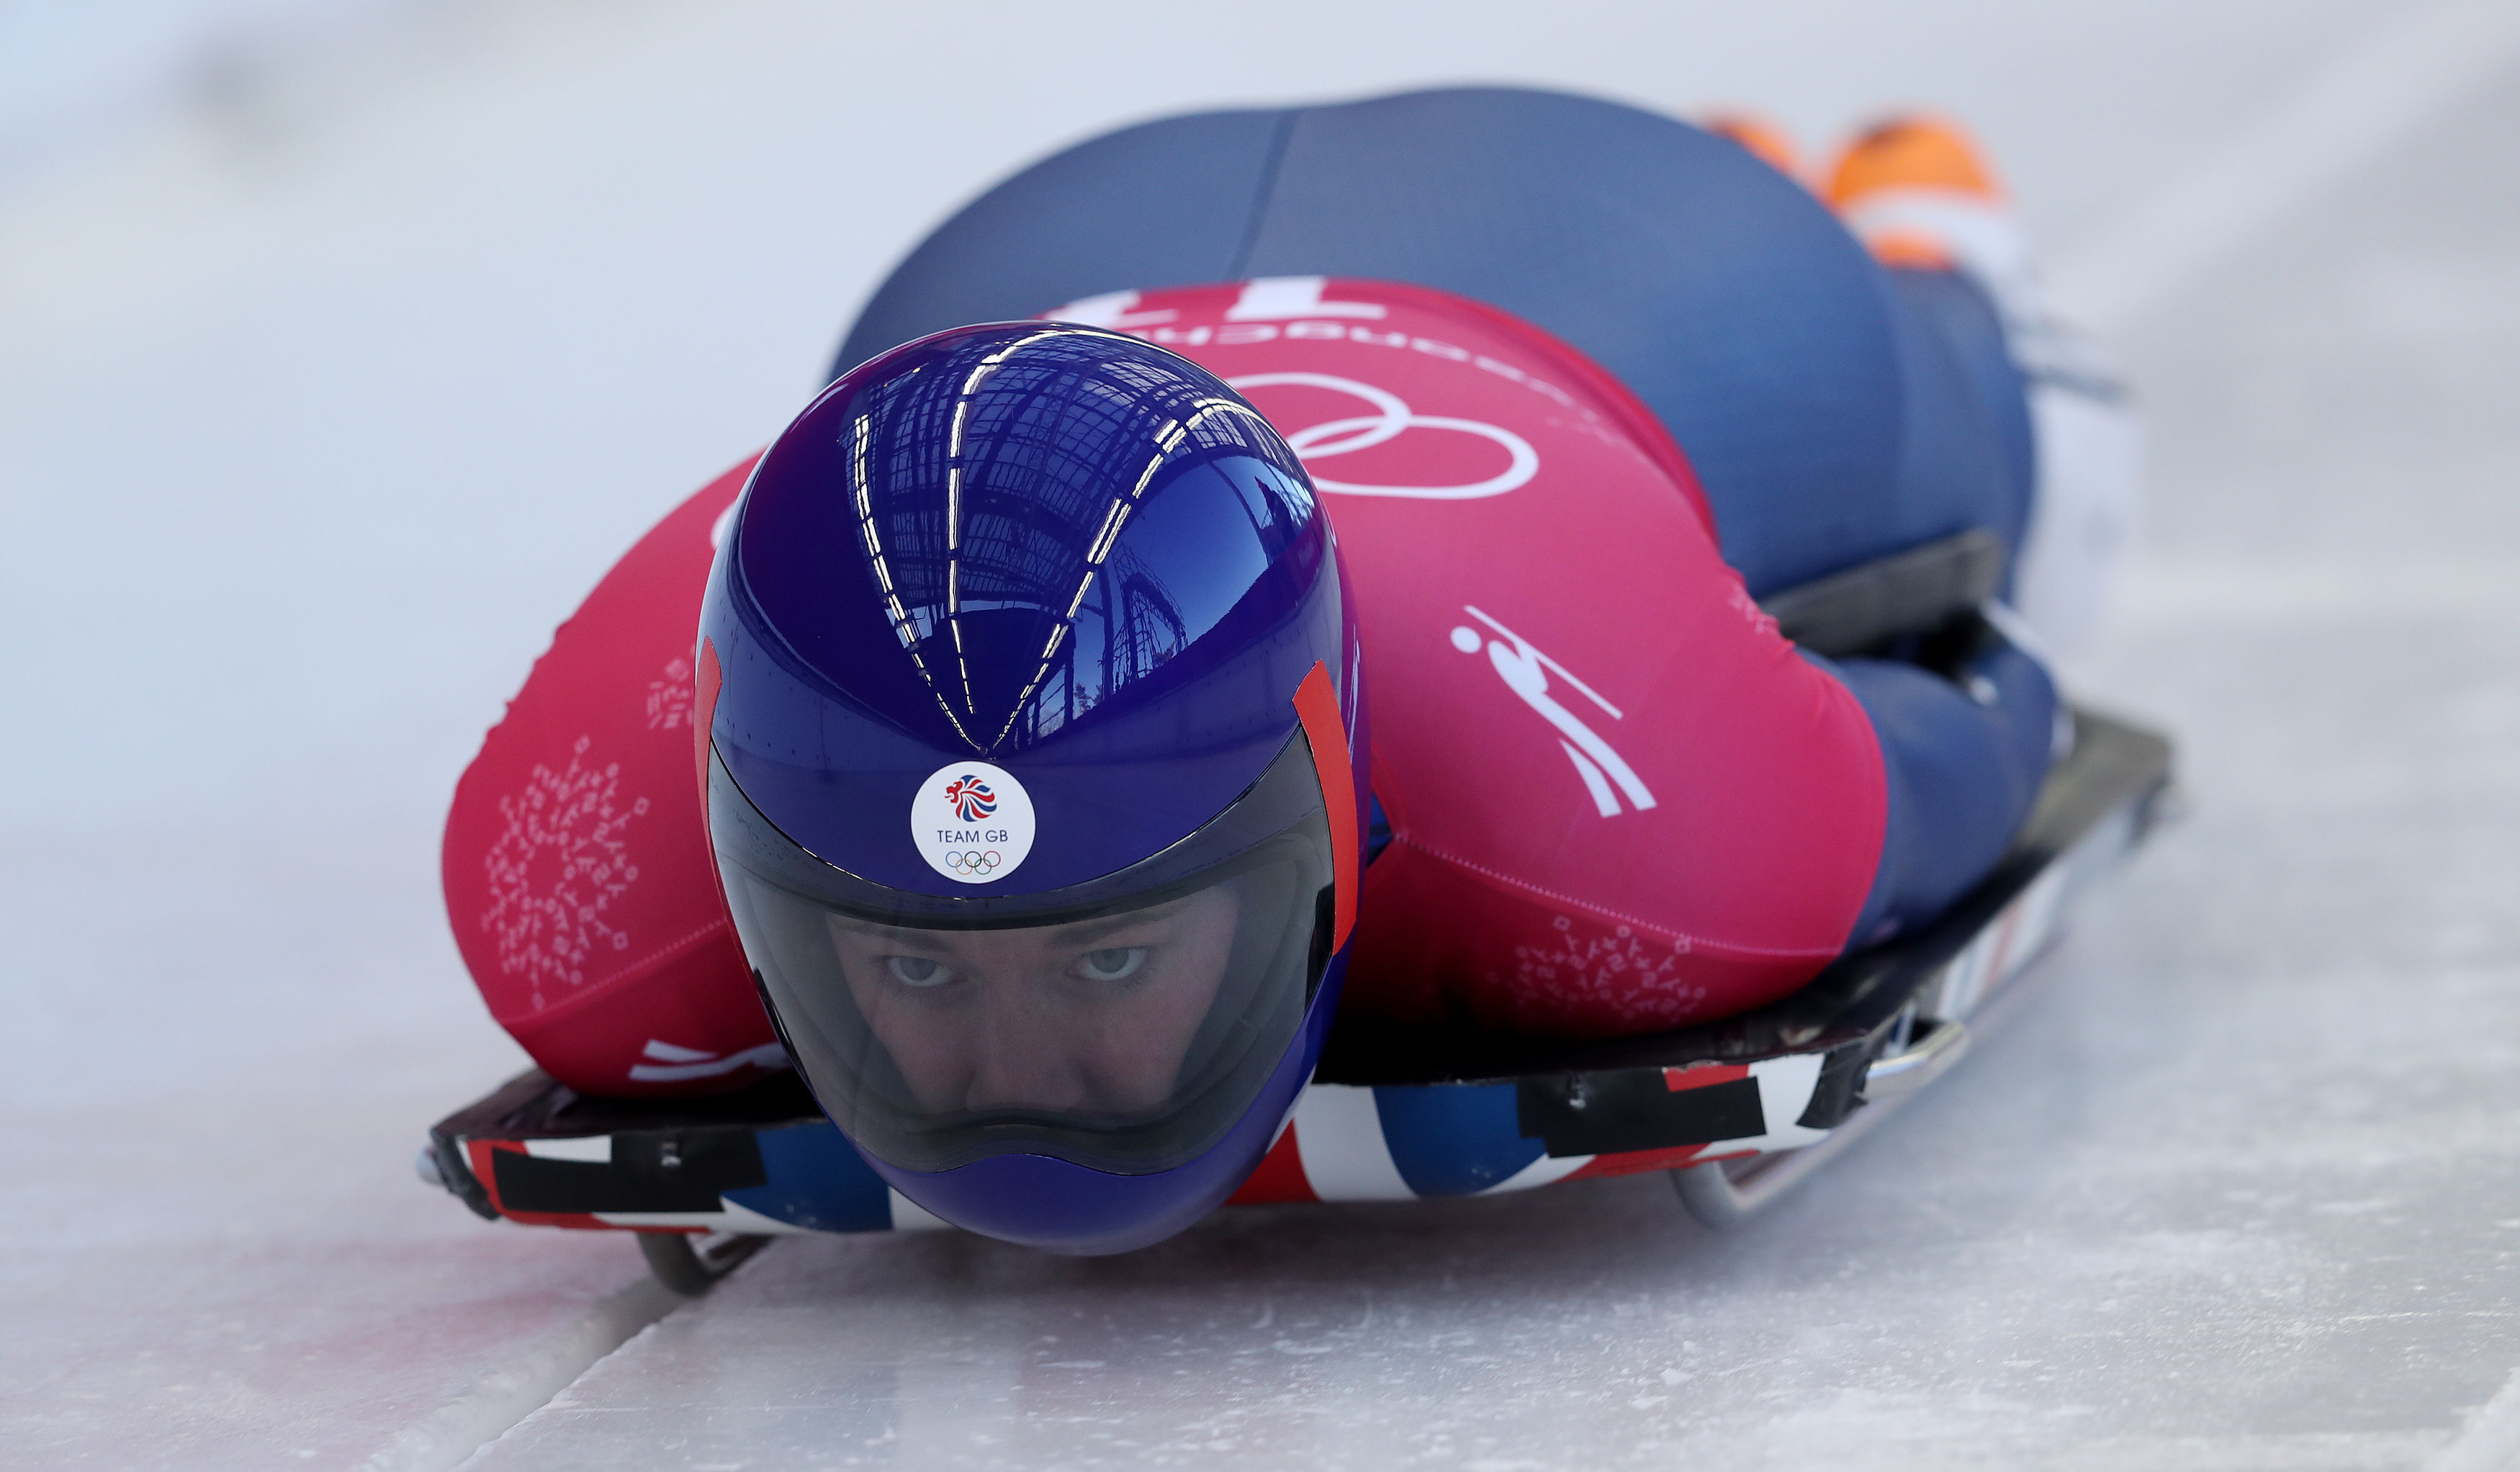 Lizzy Yarnold in third after two runs in Pyeongchang